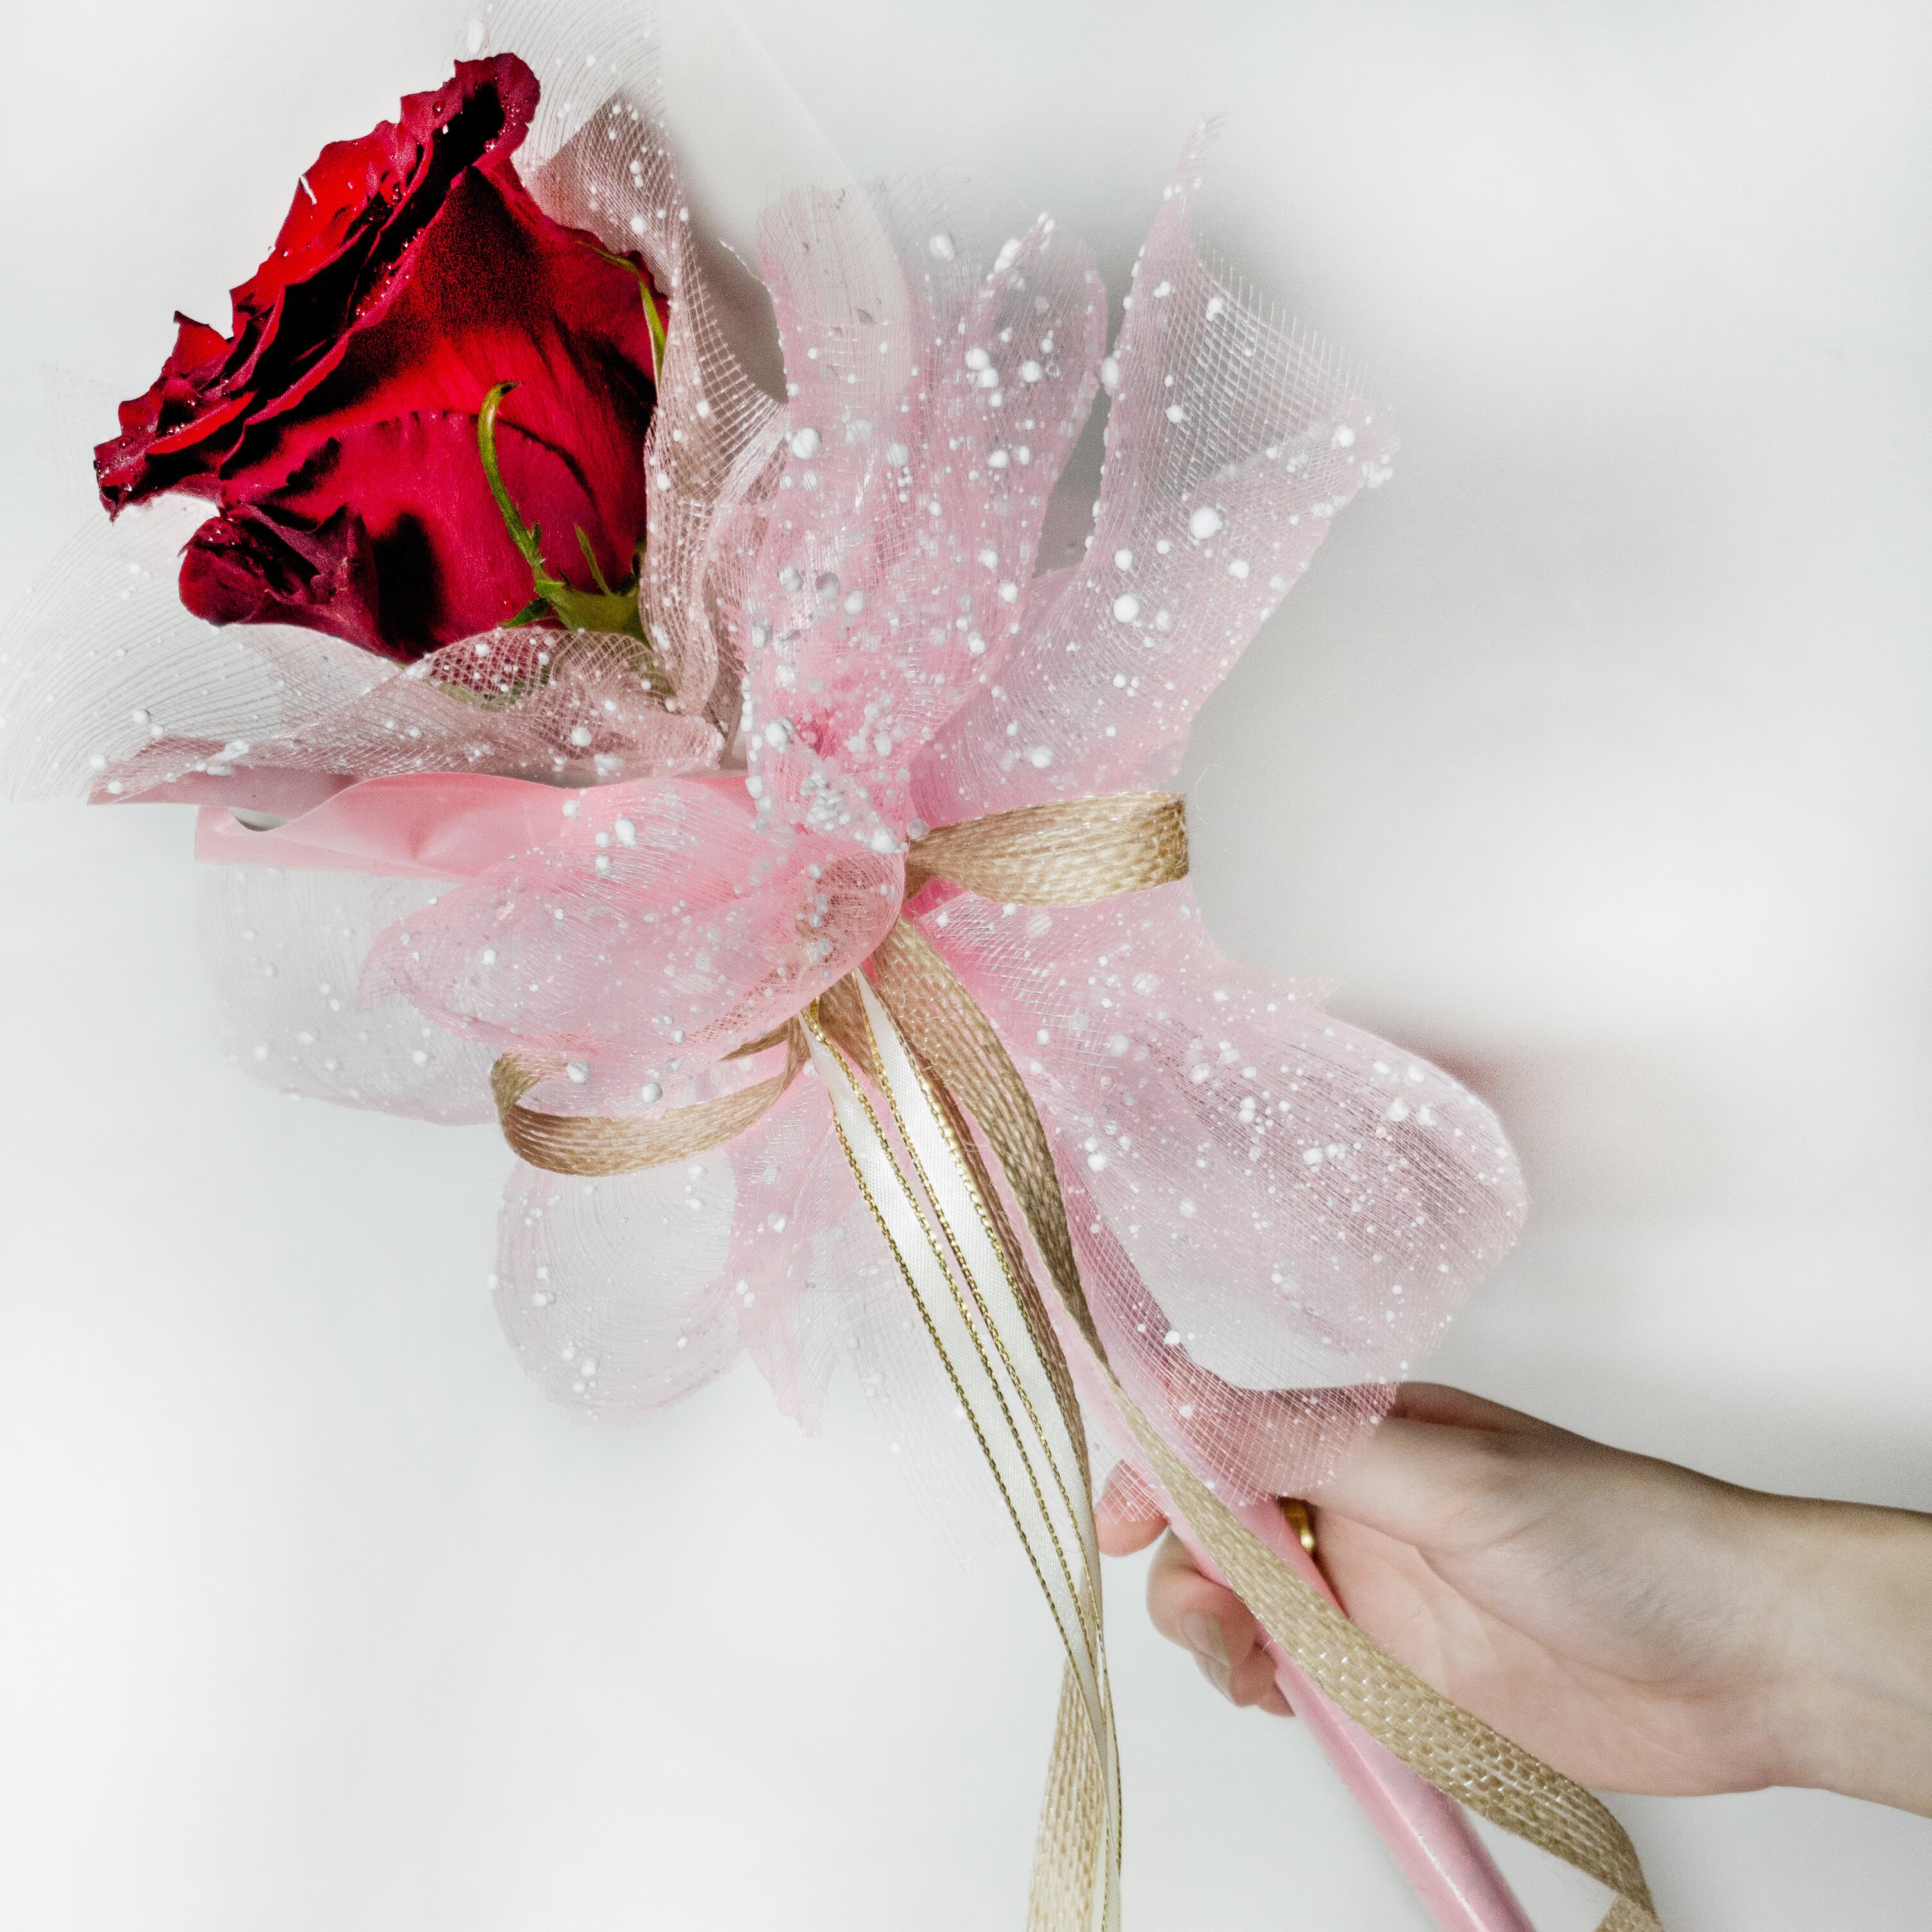 Fairy Wand - Freeland Floral 自由花苑